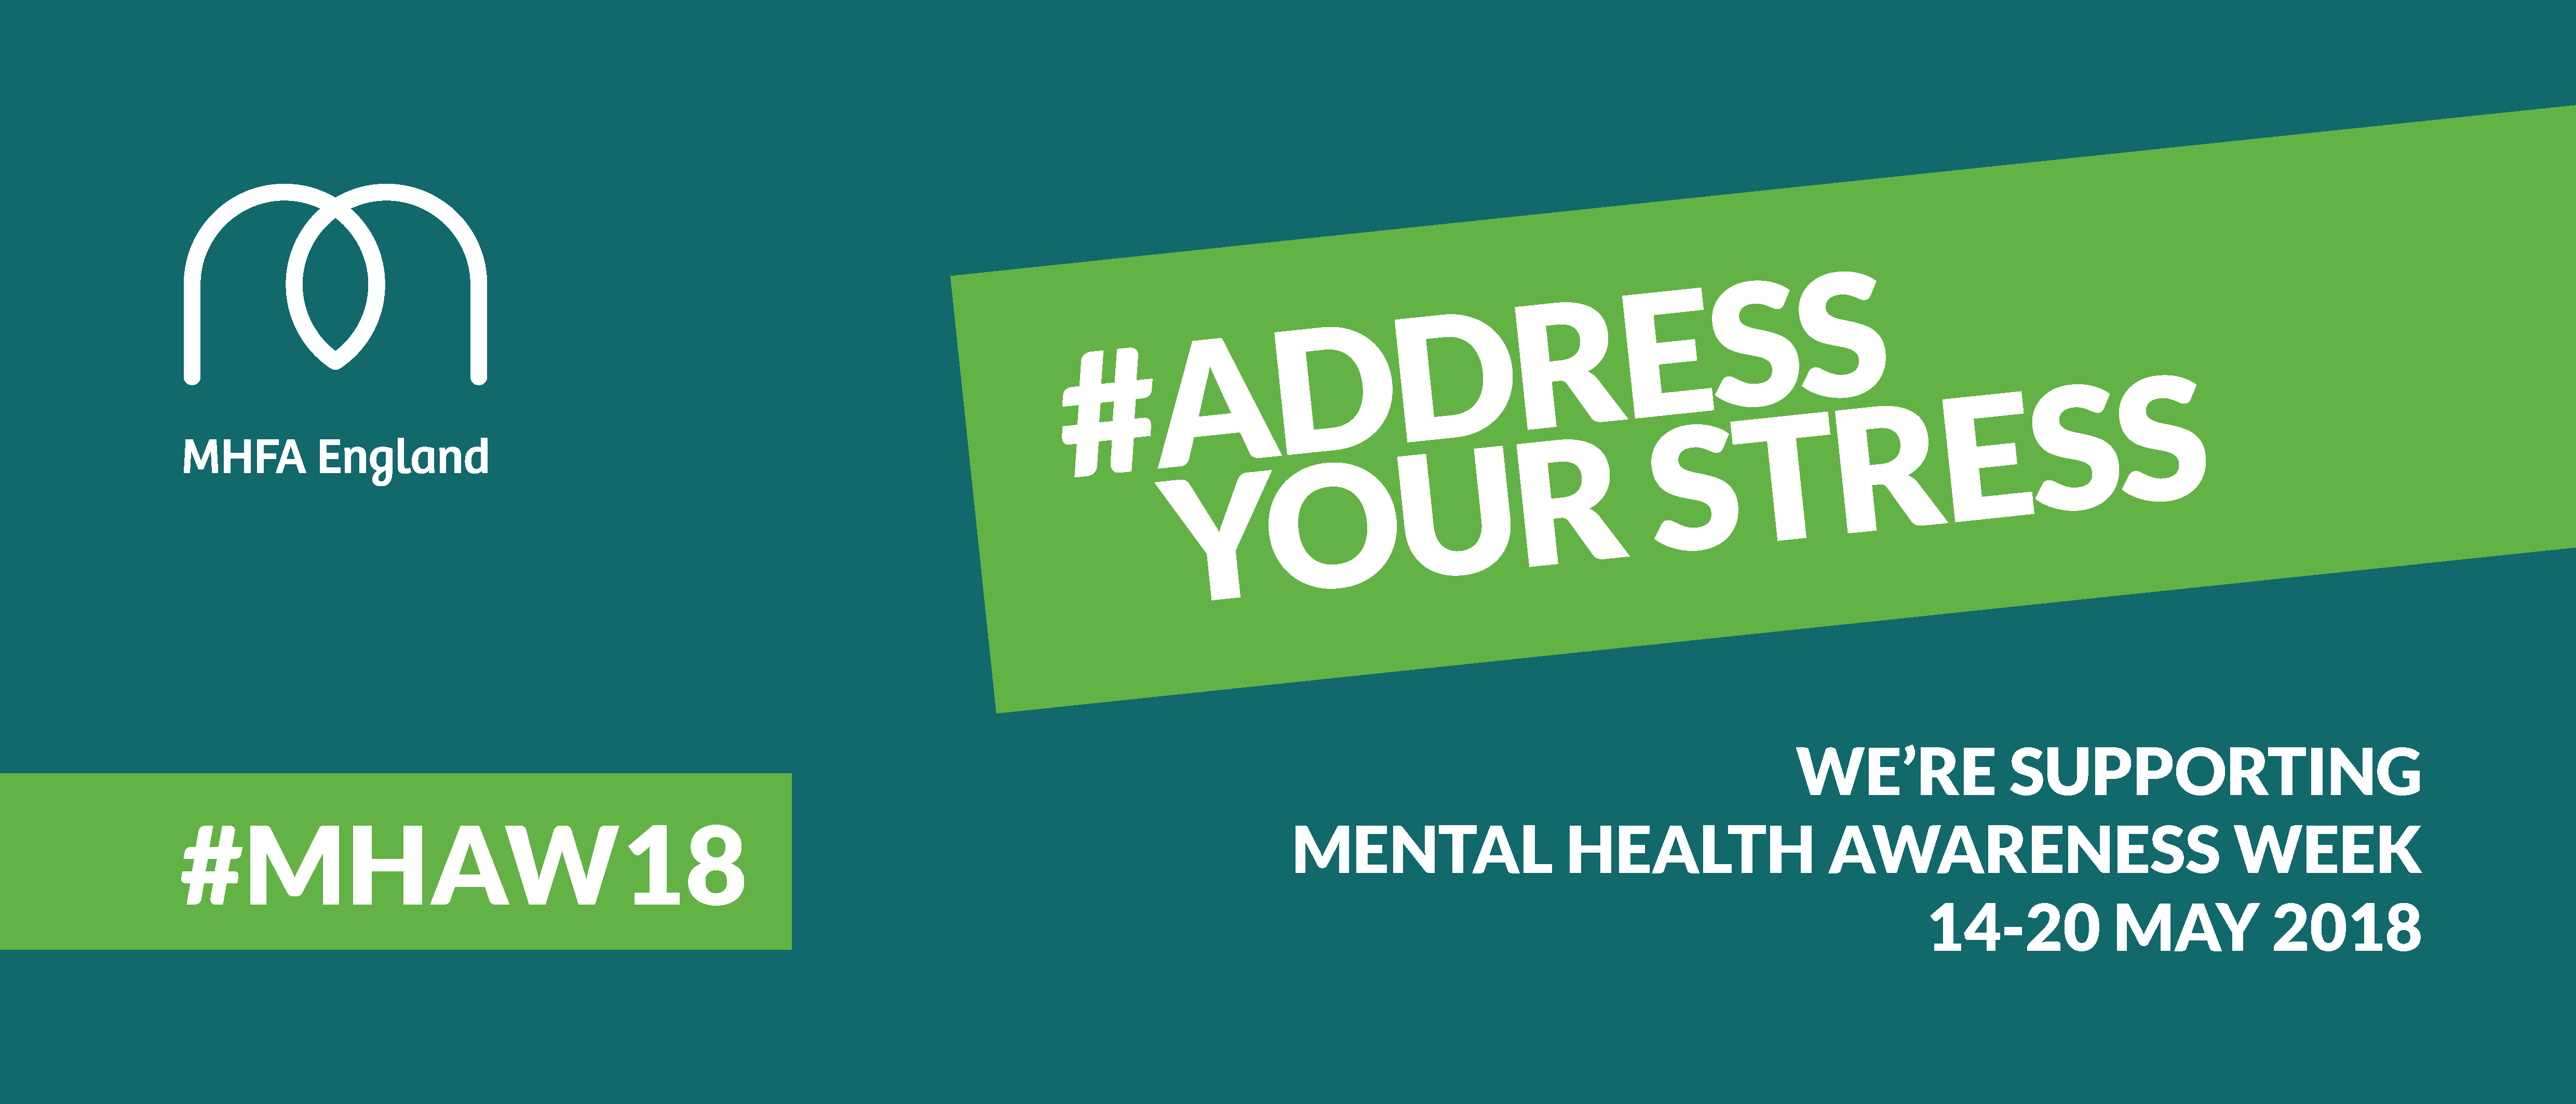 Address Your Stress Toolkit Launches Mhfa England